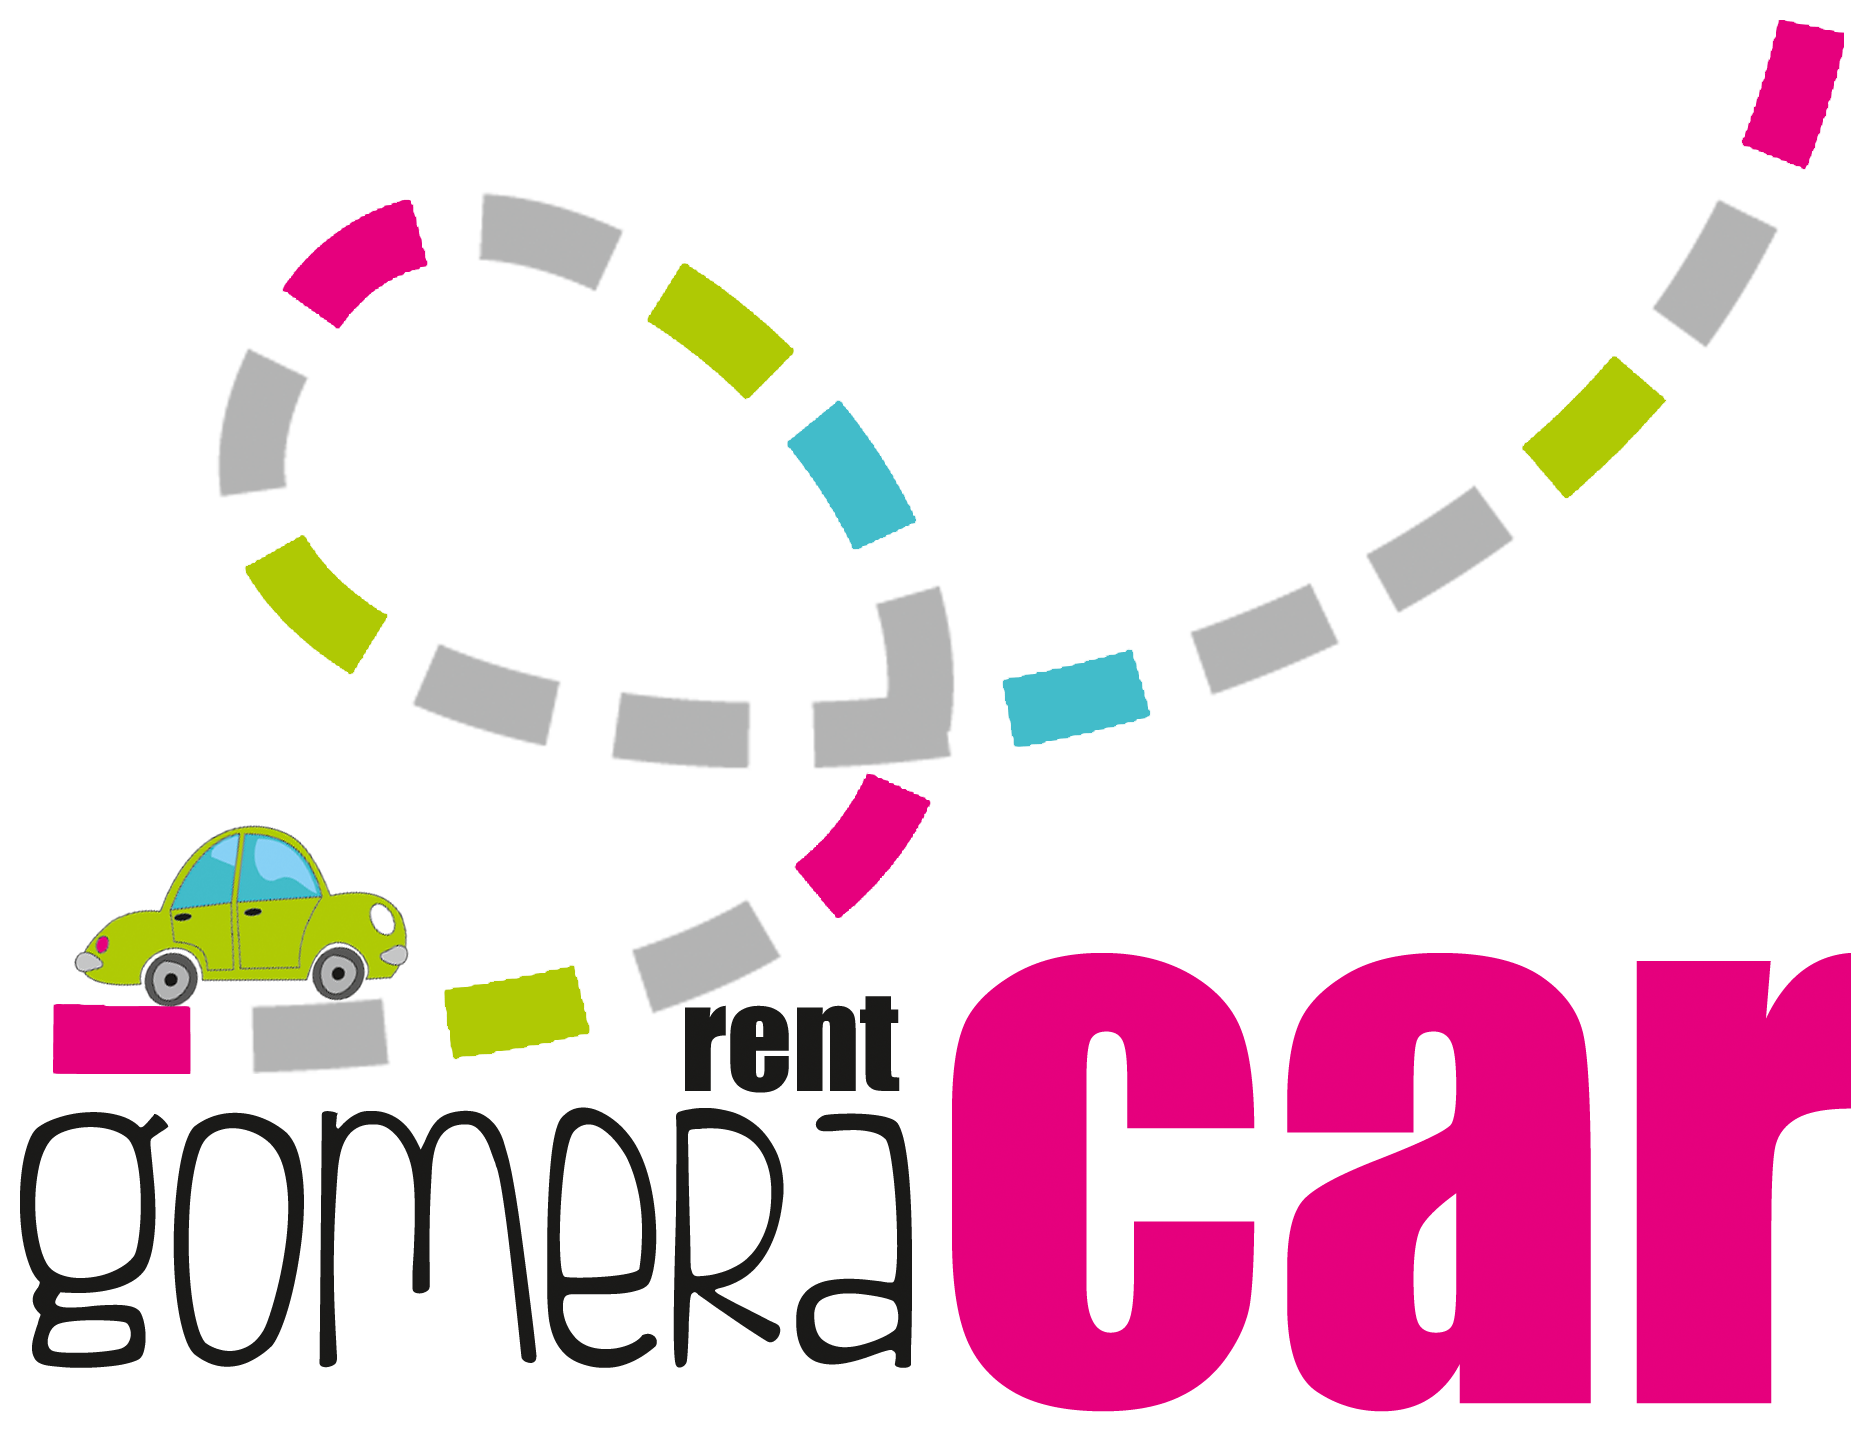 Gomera Car. Car rental in La Gomera, Canary Islands